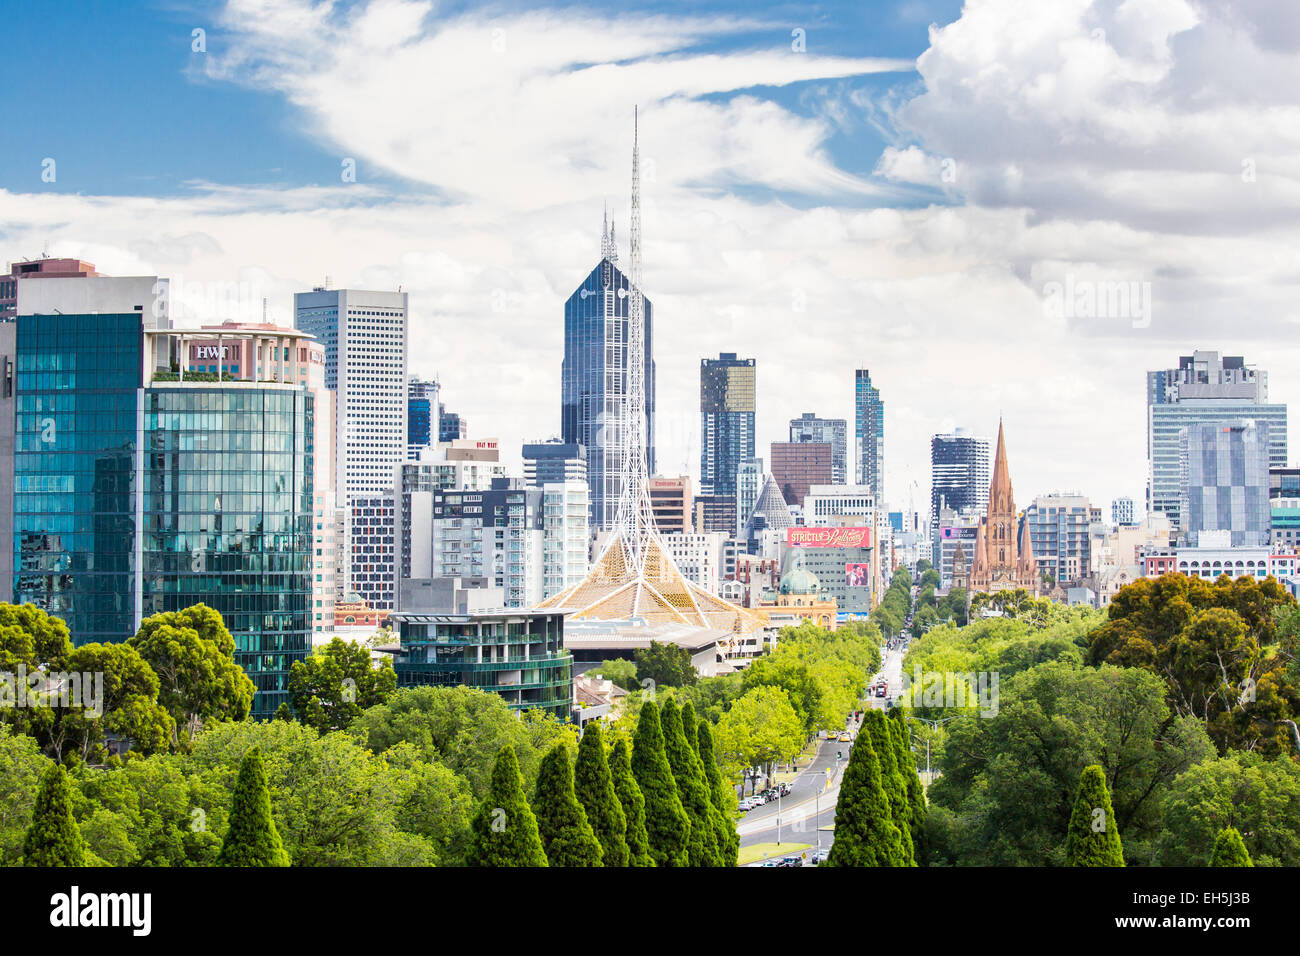 The view from the Shrine of Remembrance towards Melbourne CBD on a hot summer's day - Stock Image